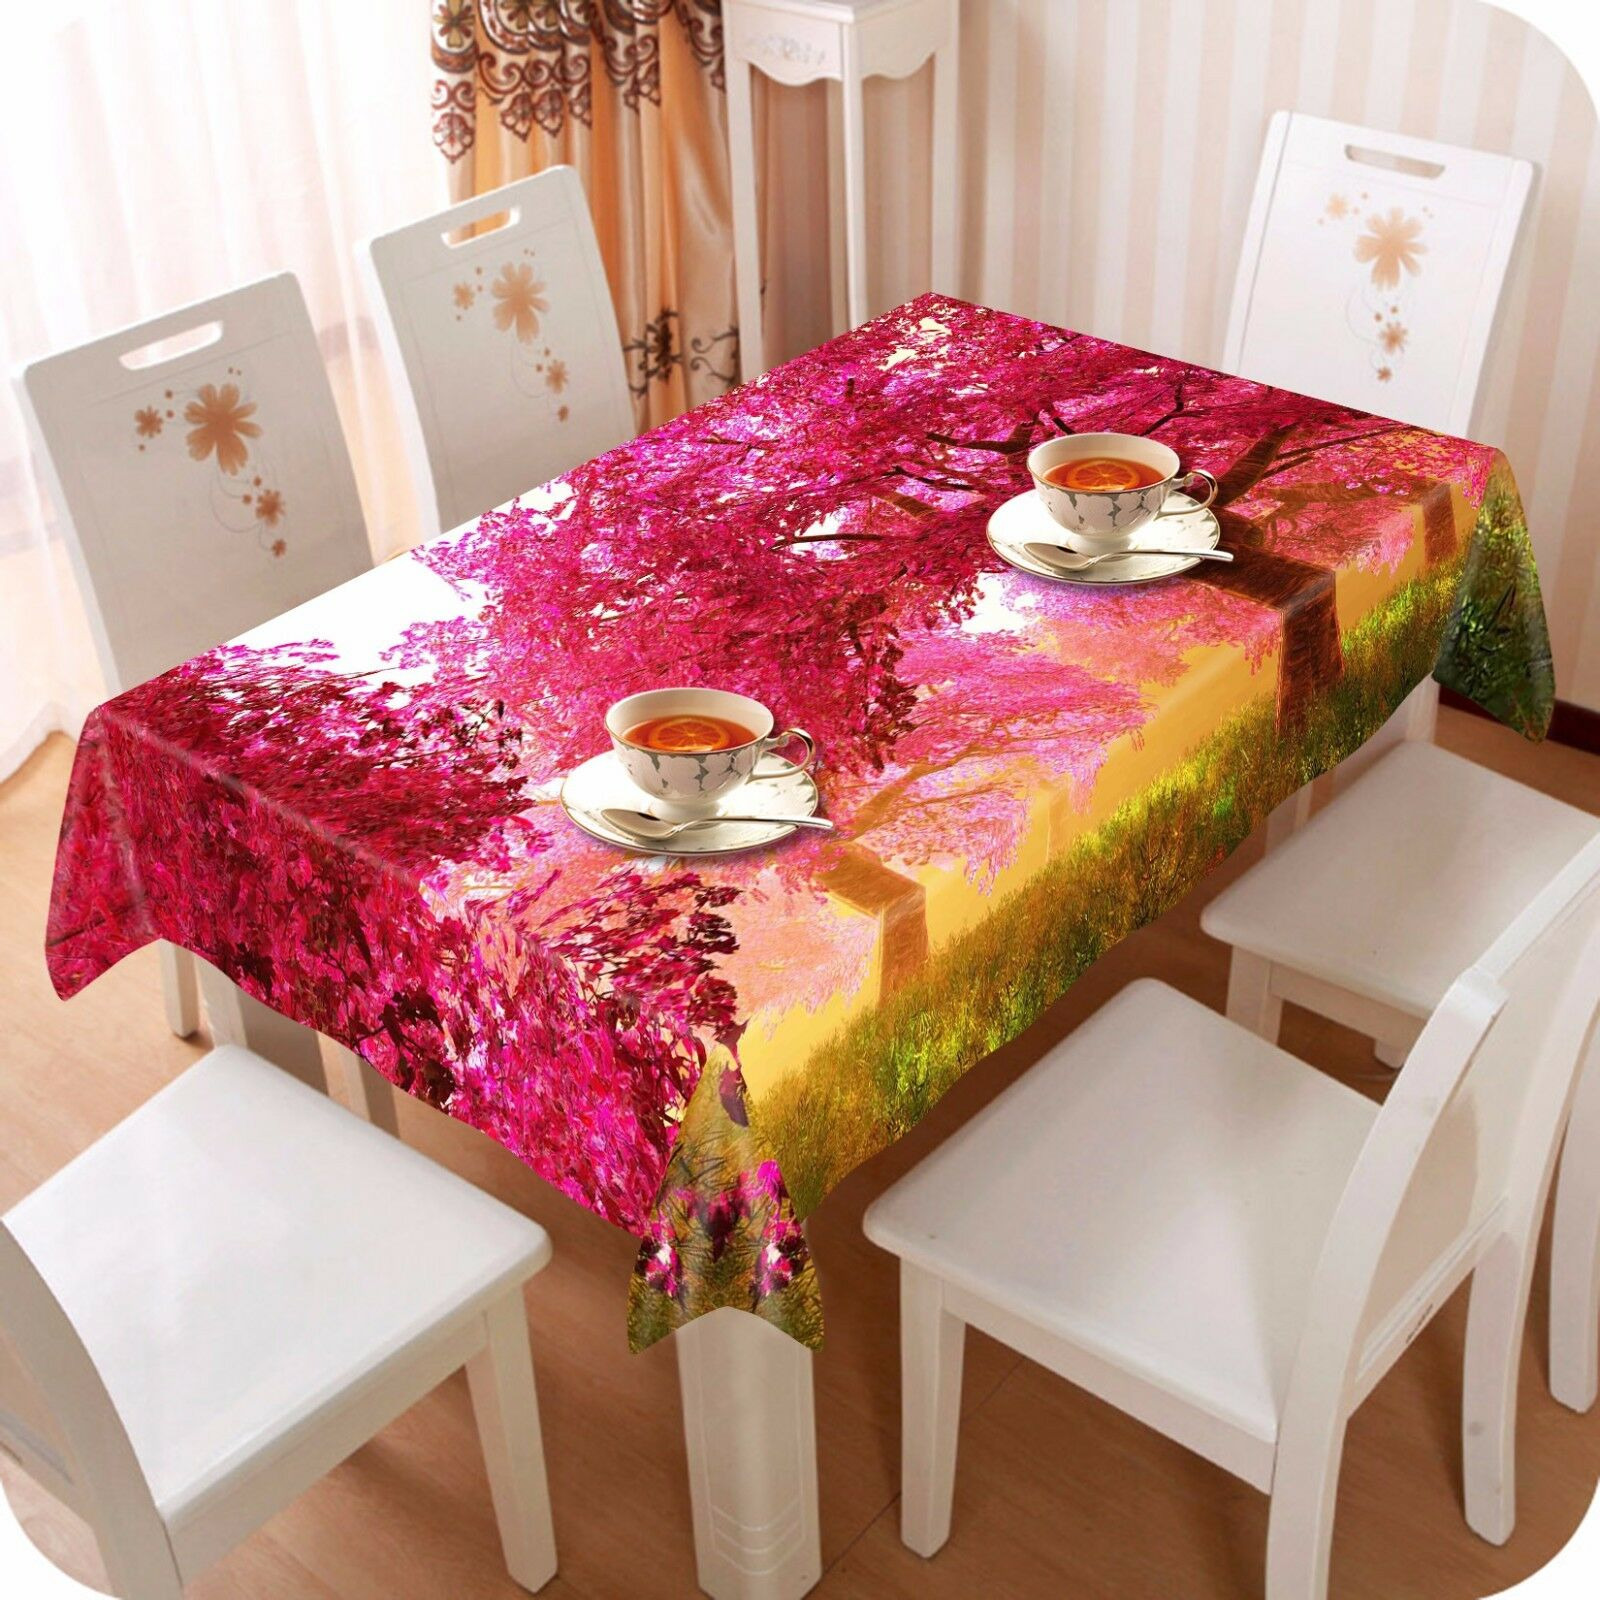 3D Maple Trees Tablecloth Table Cover Cloth Birthday Party AJ WALLPAPER UK Lemon